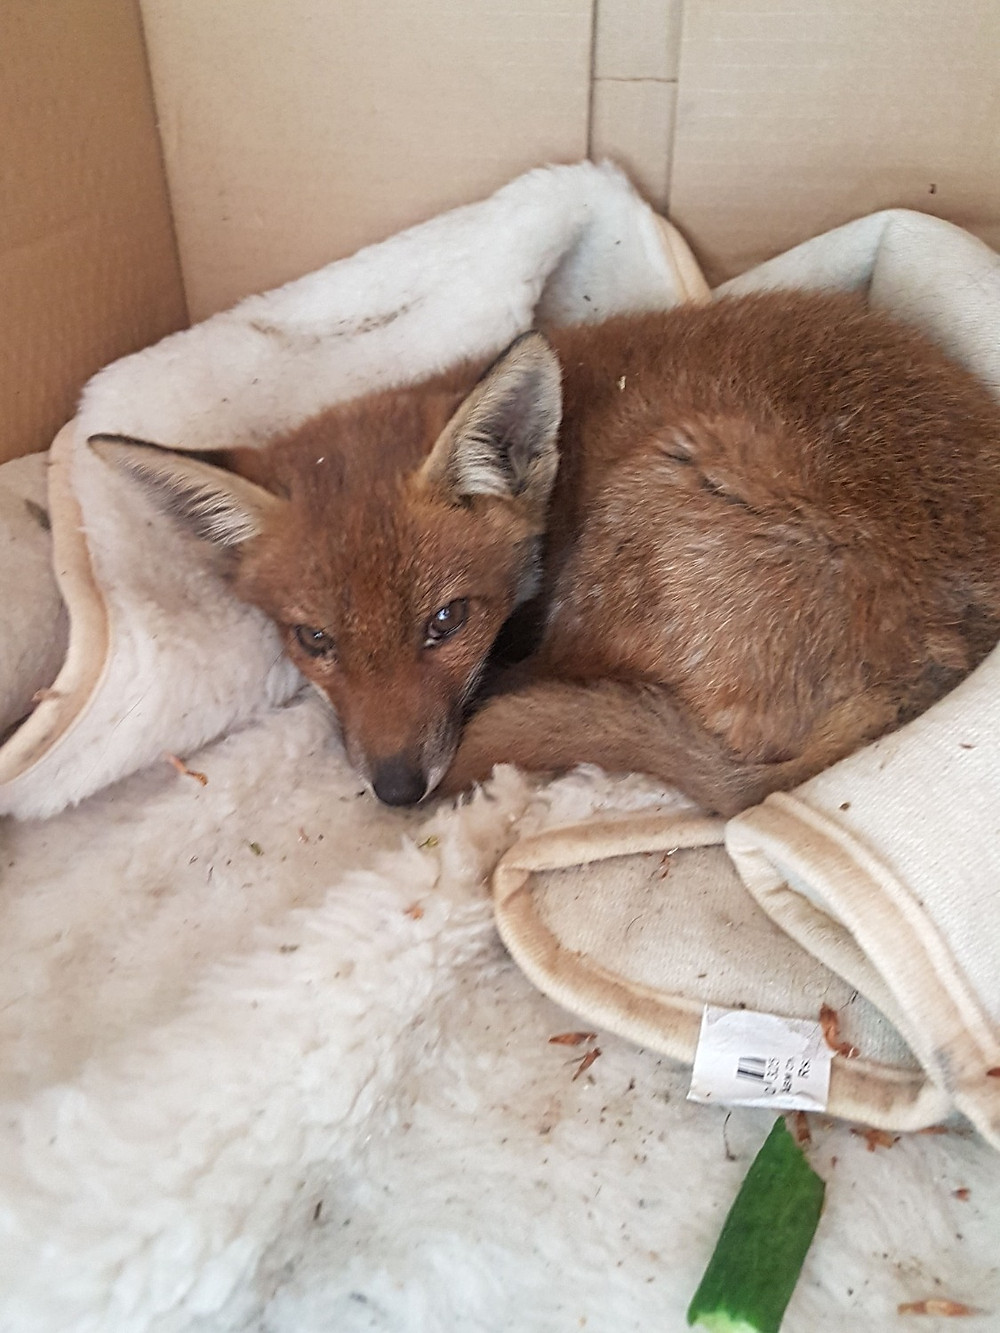 Fox cub insitu at incident location